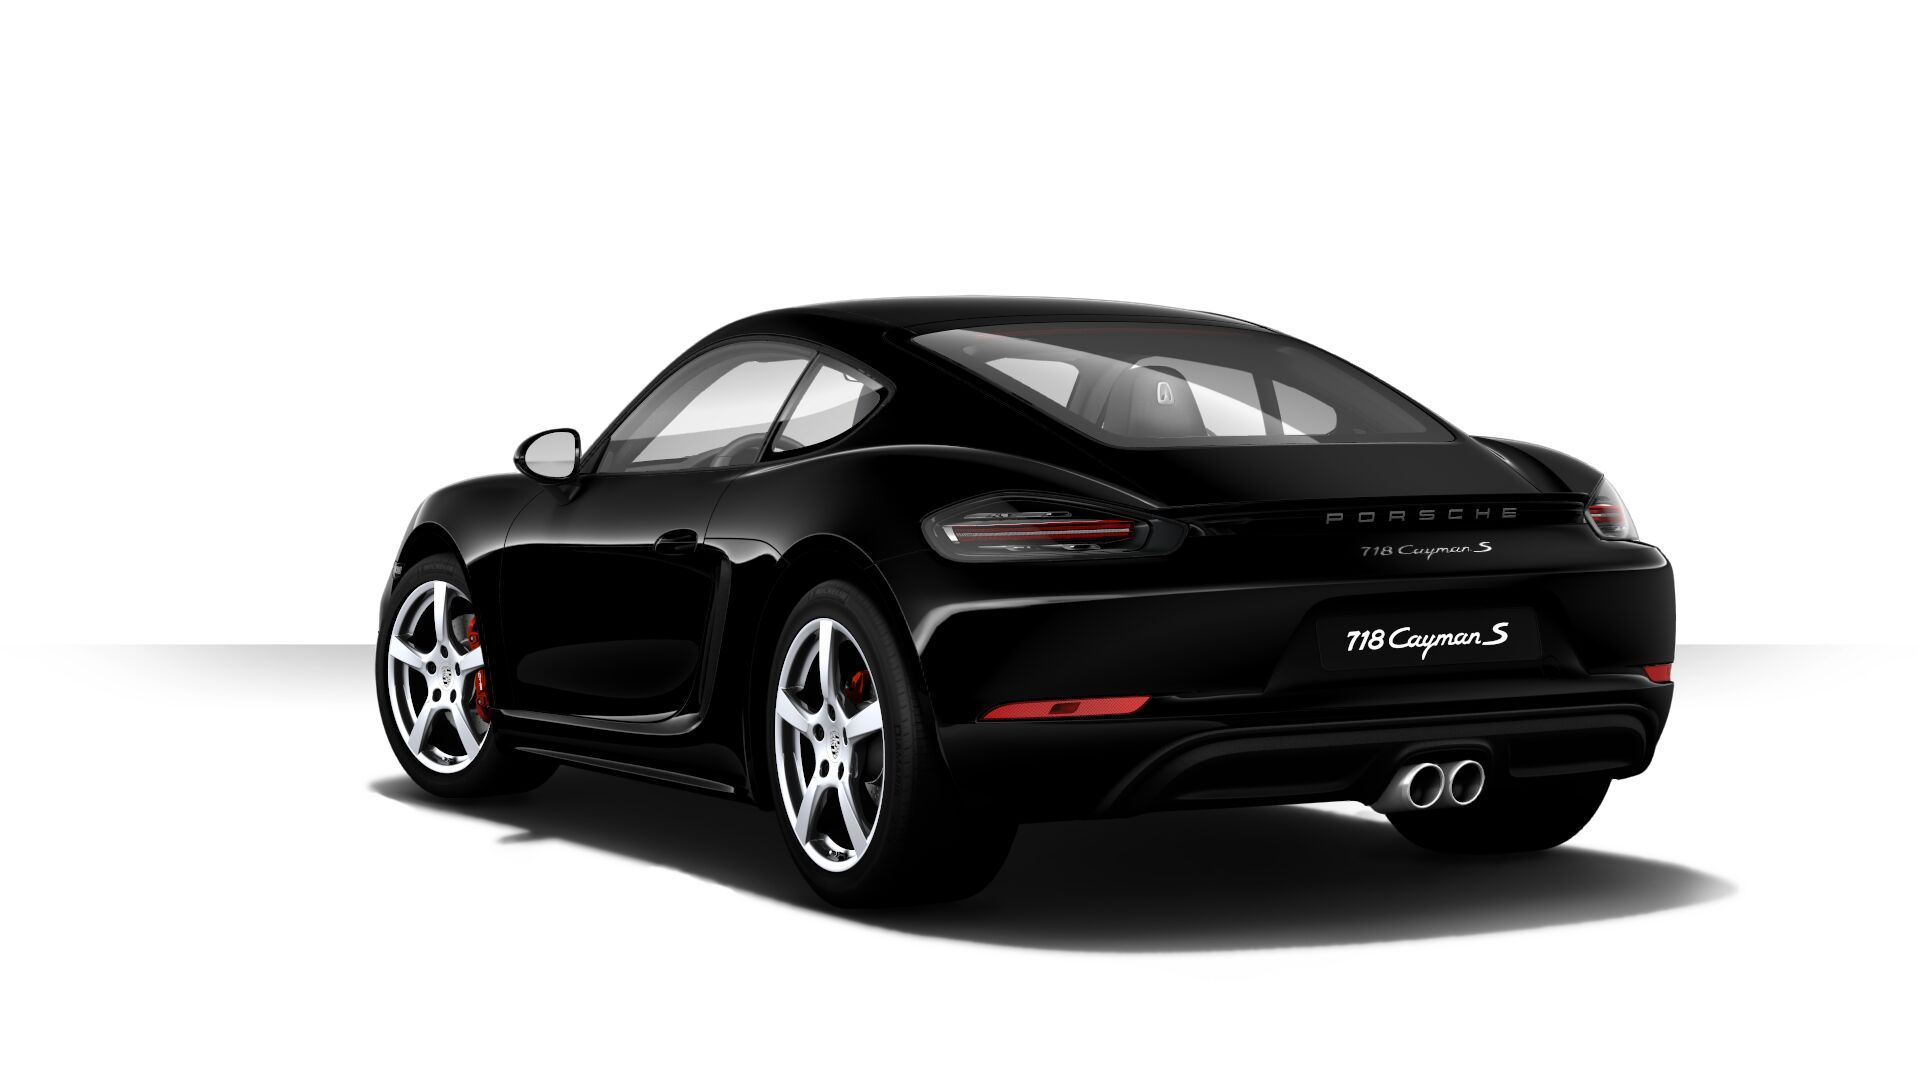 Porsche Hd Wallpapers 1080p: 2017 Porsche 718 Cayman Free 1080p Cool Car New HD